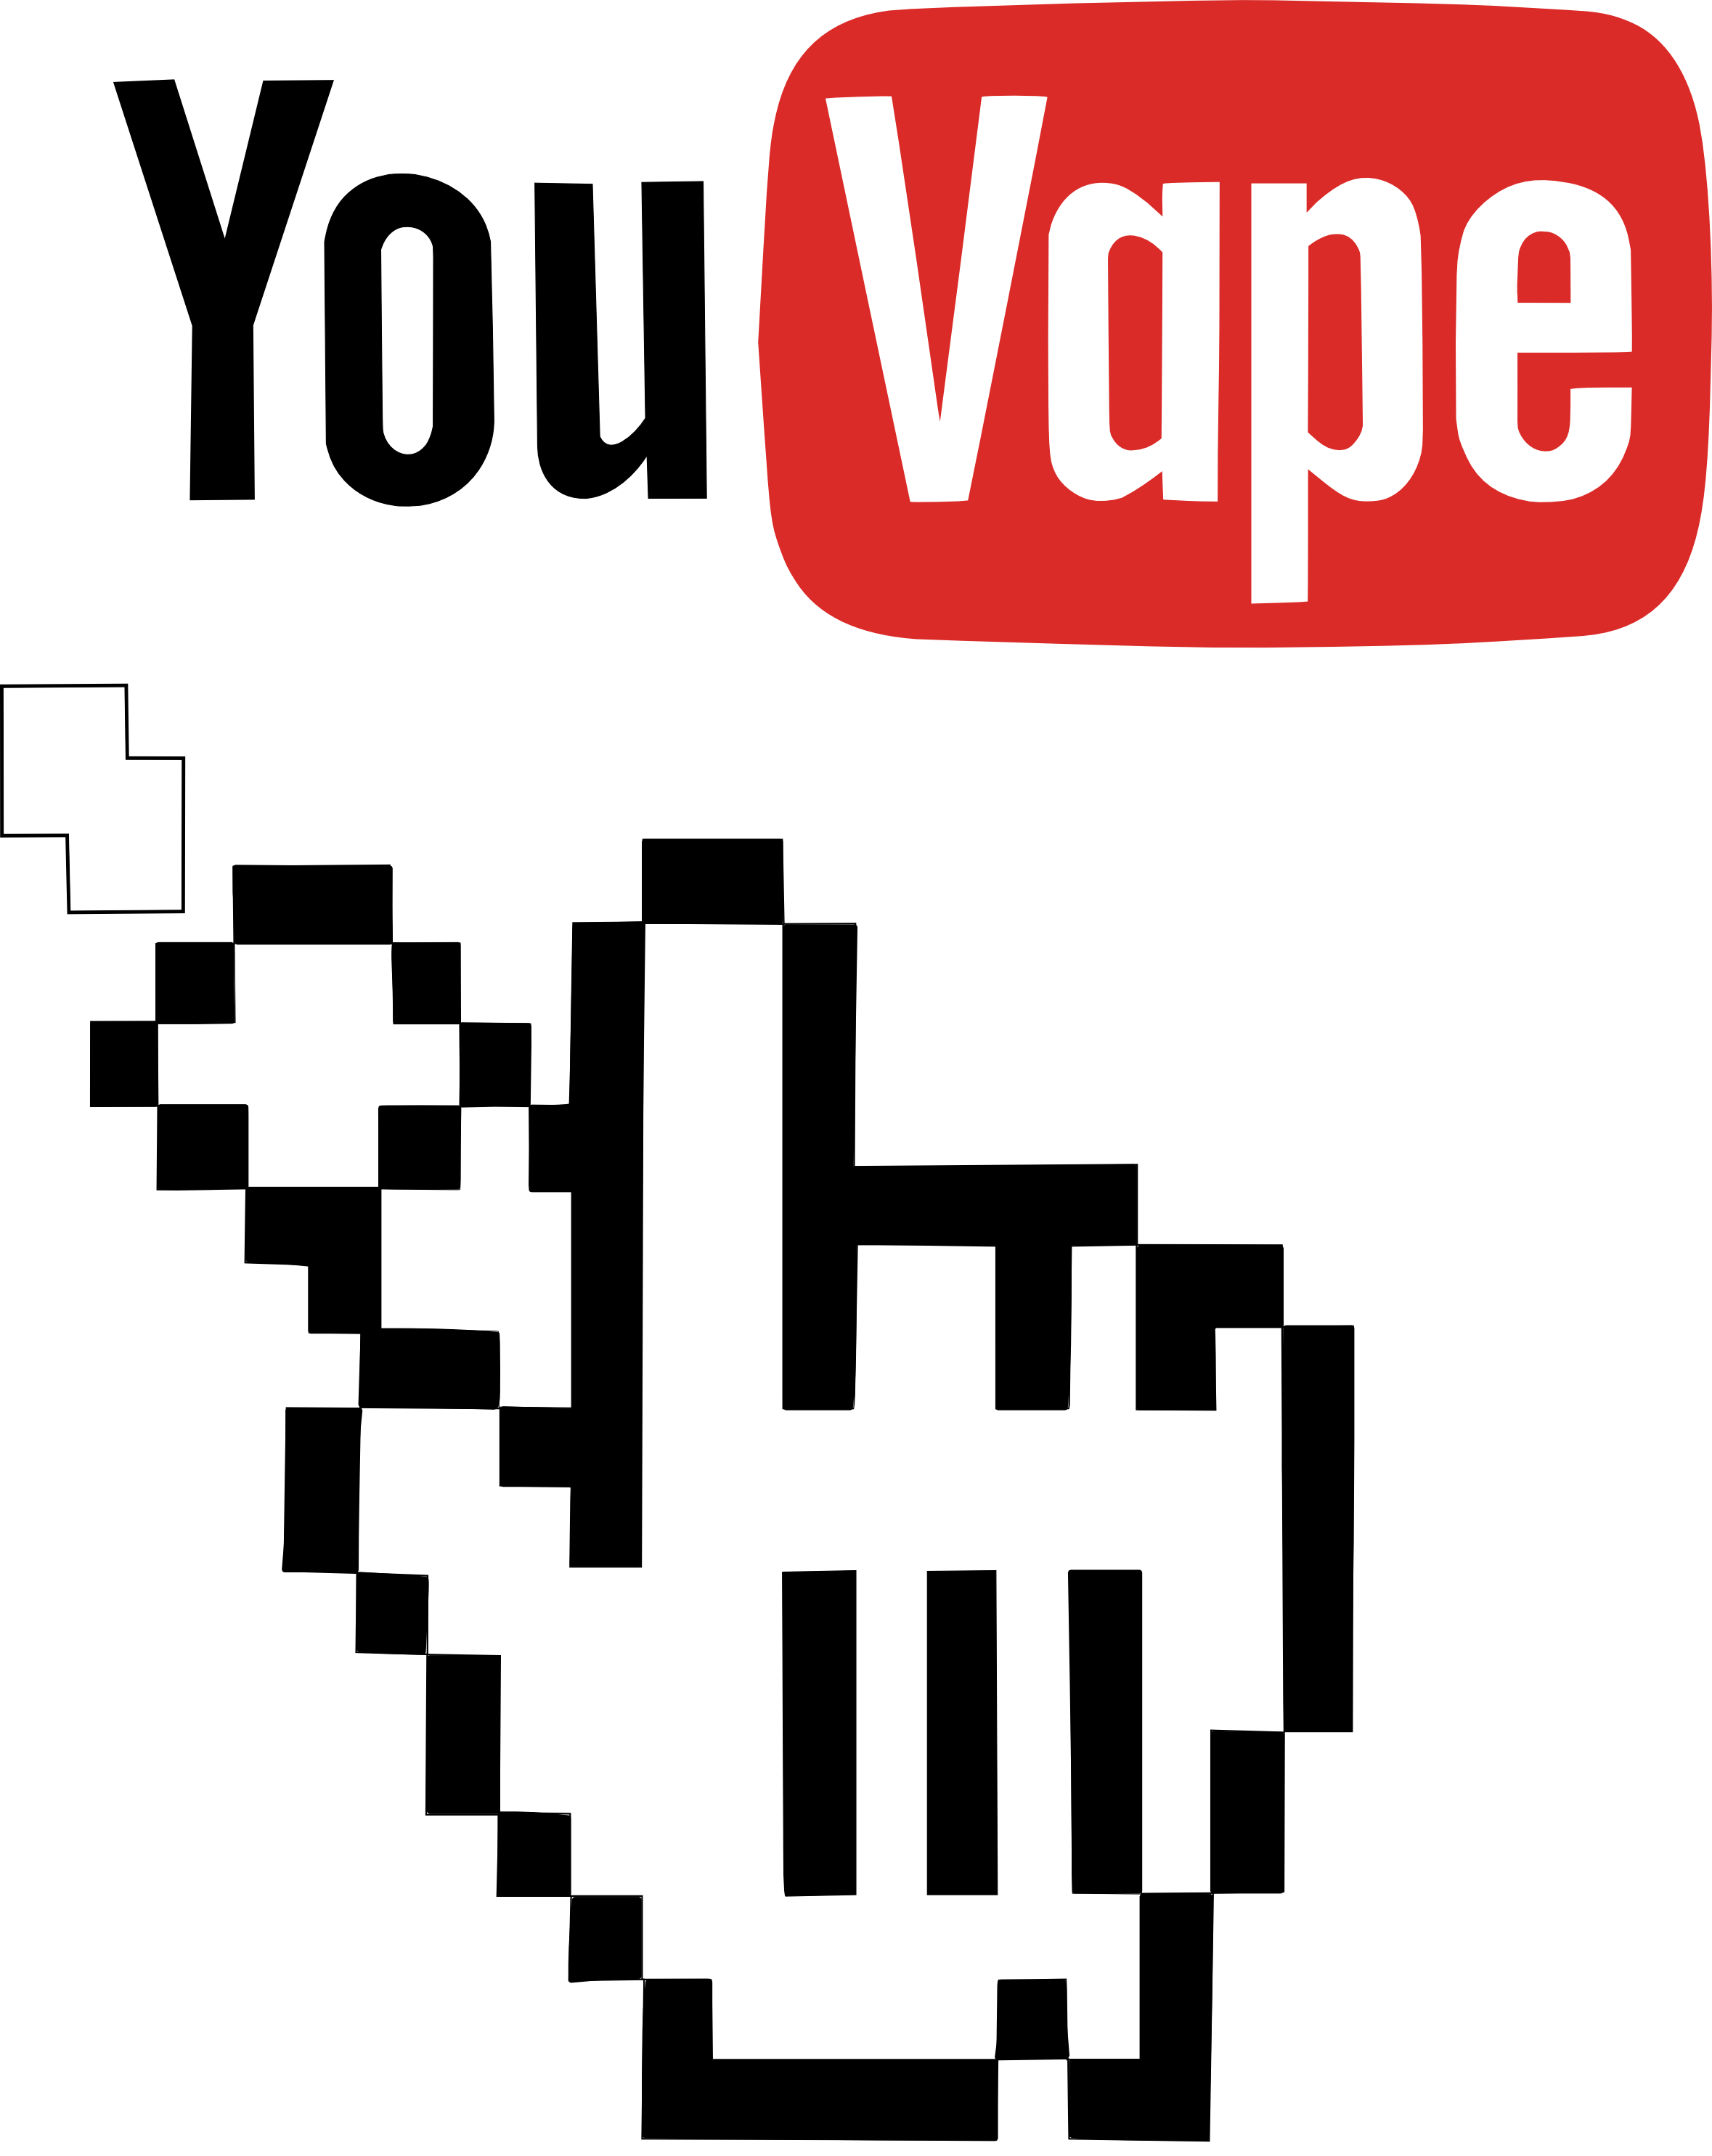 Shirts clipart smelly. Pin by vape nation